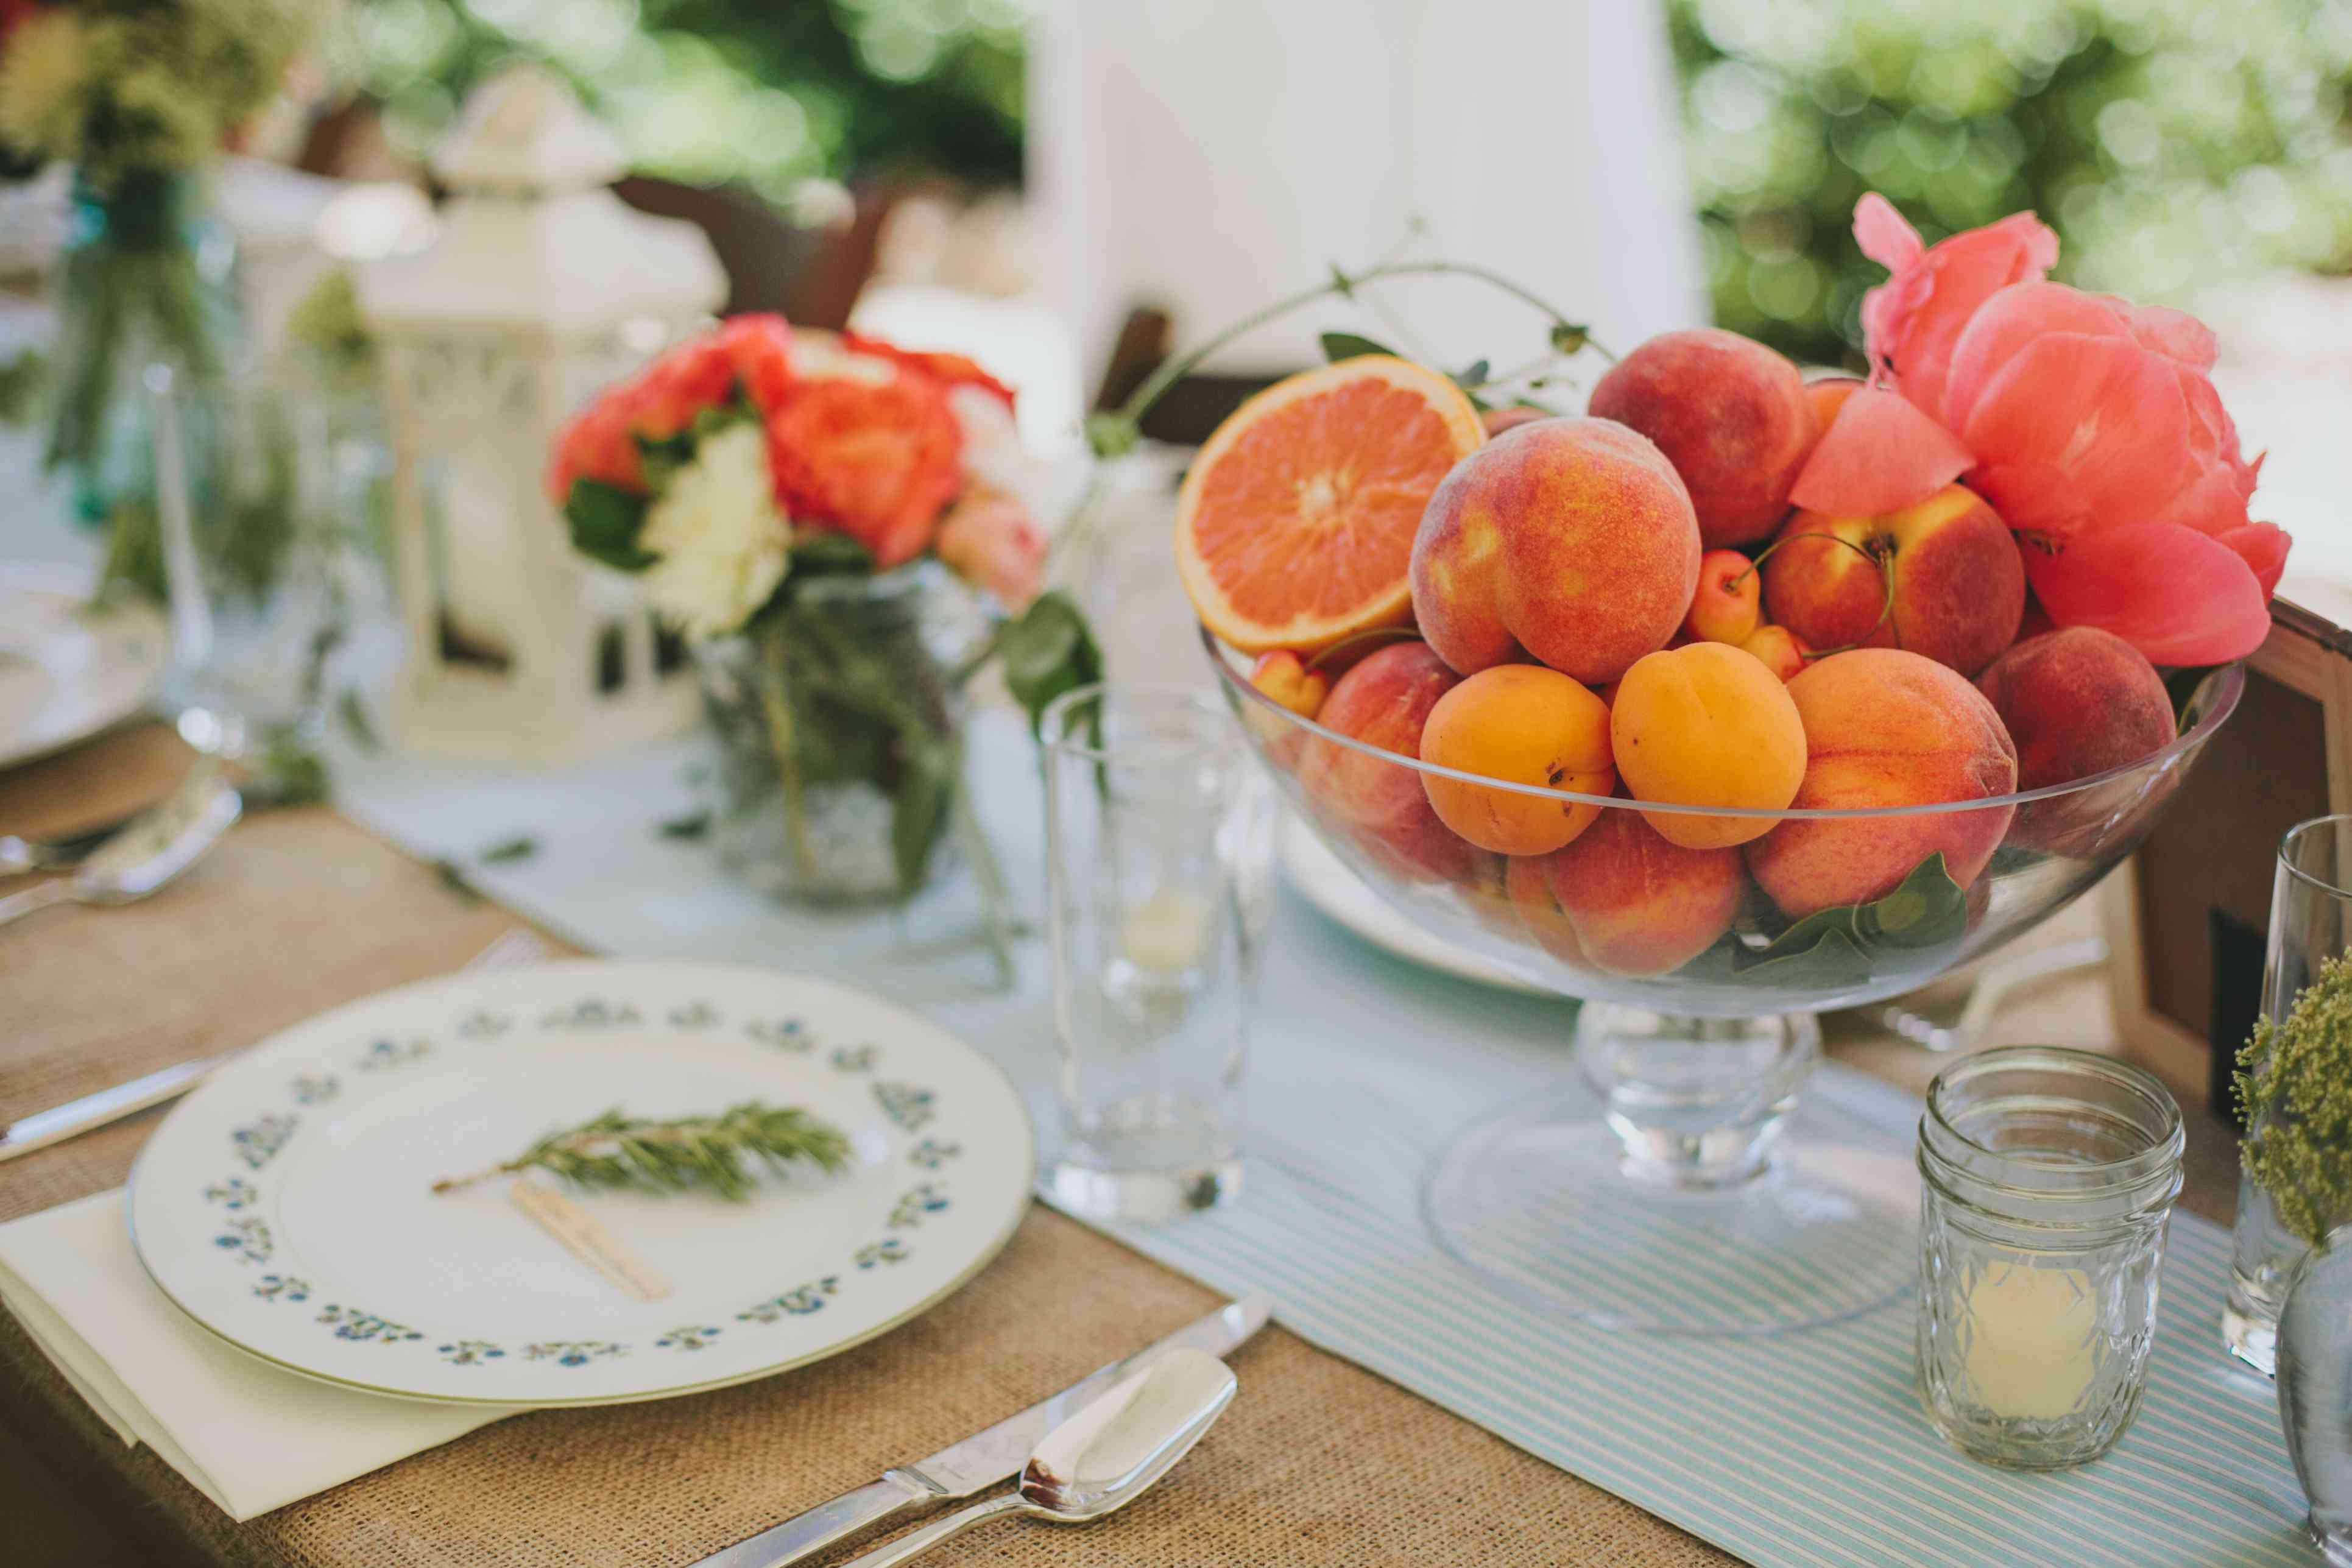 Peaches, citrus, and pink flowers as a centerpiece